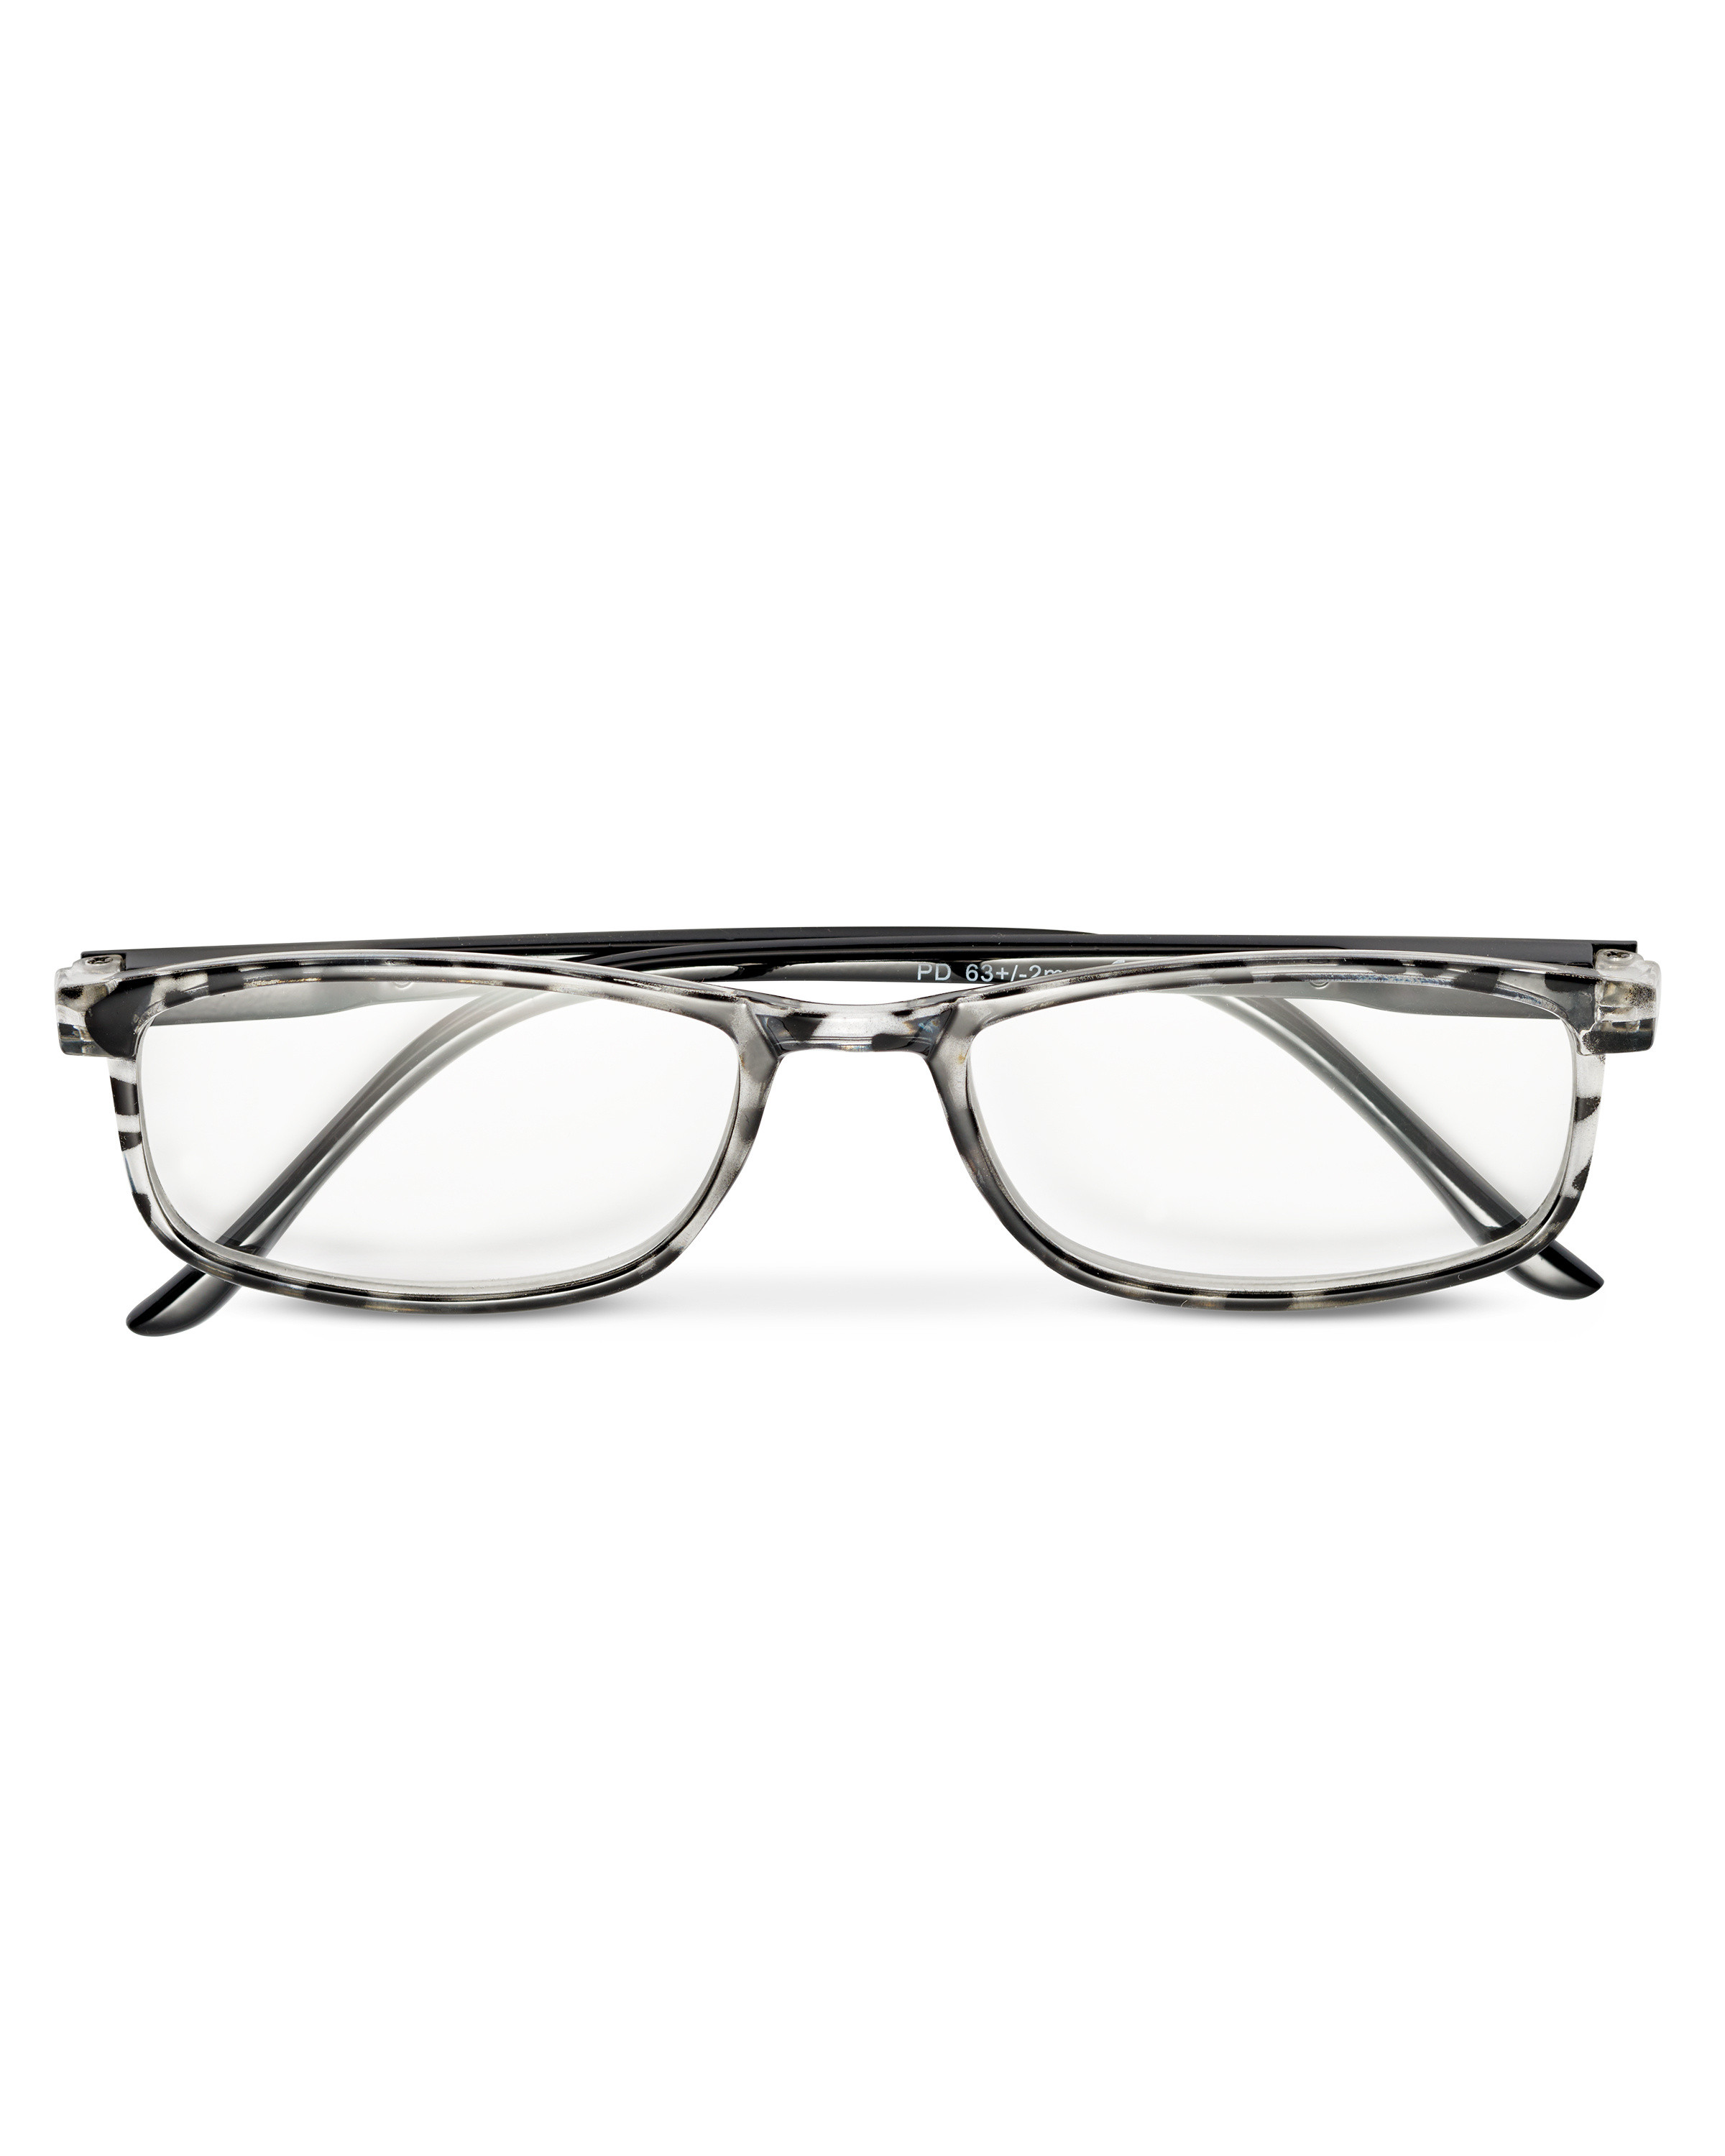 Black/White Reading Glasses